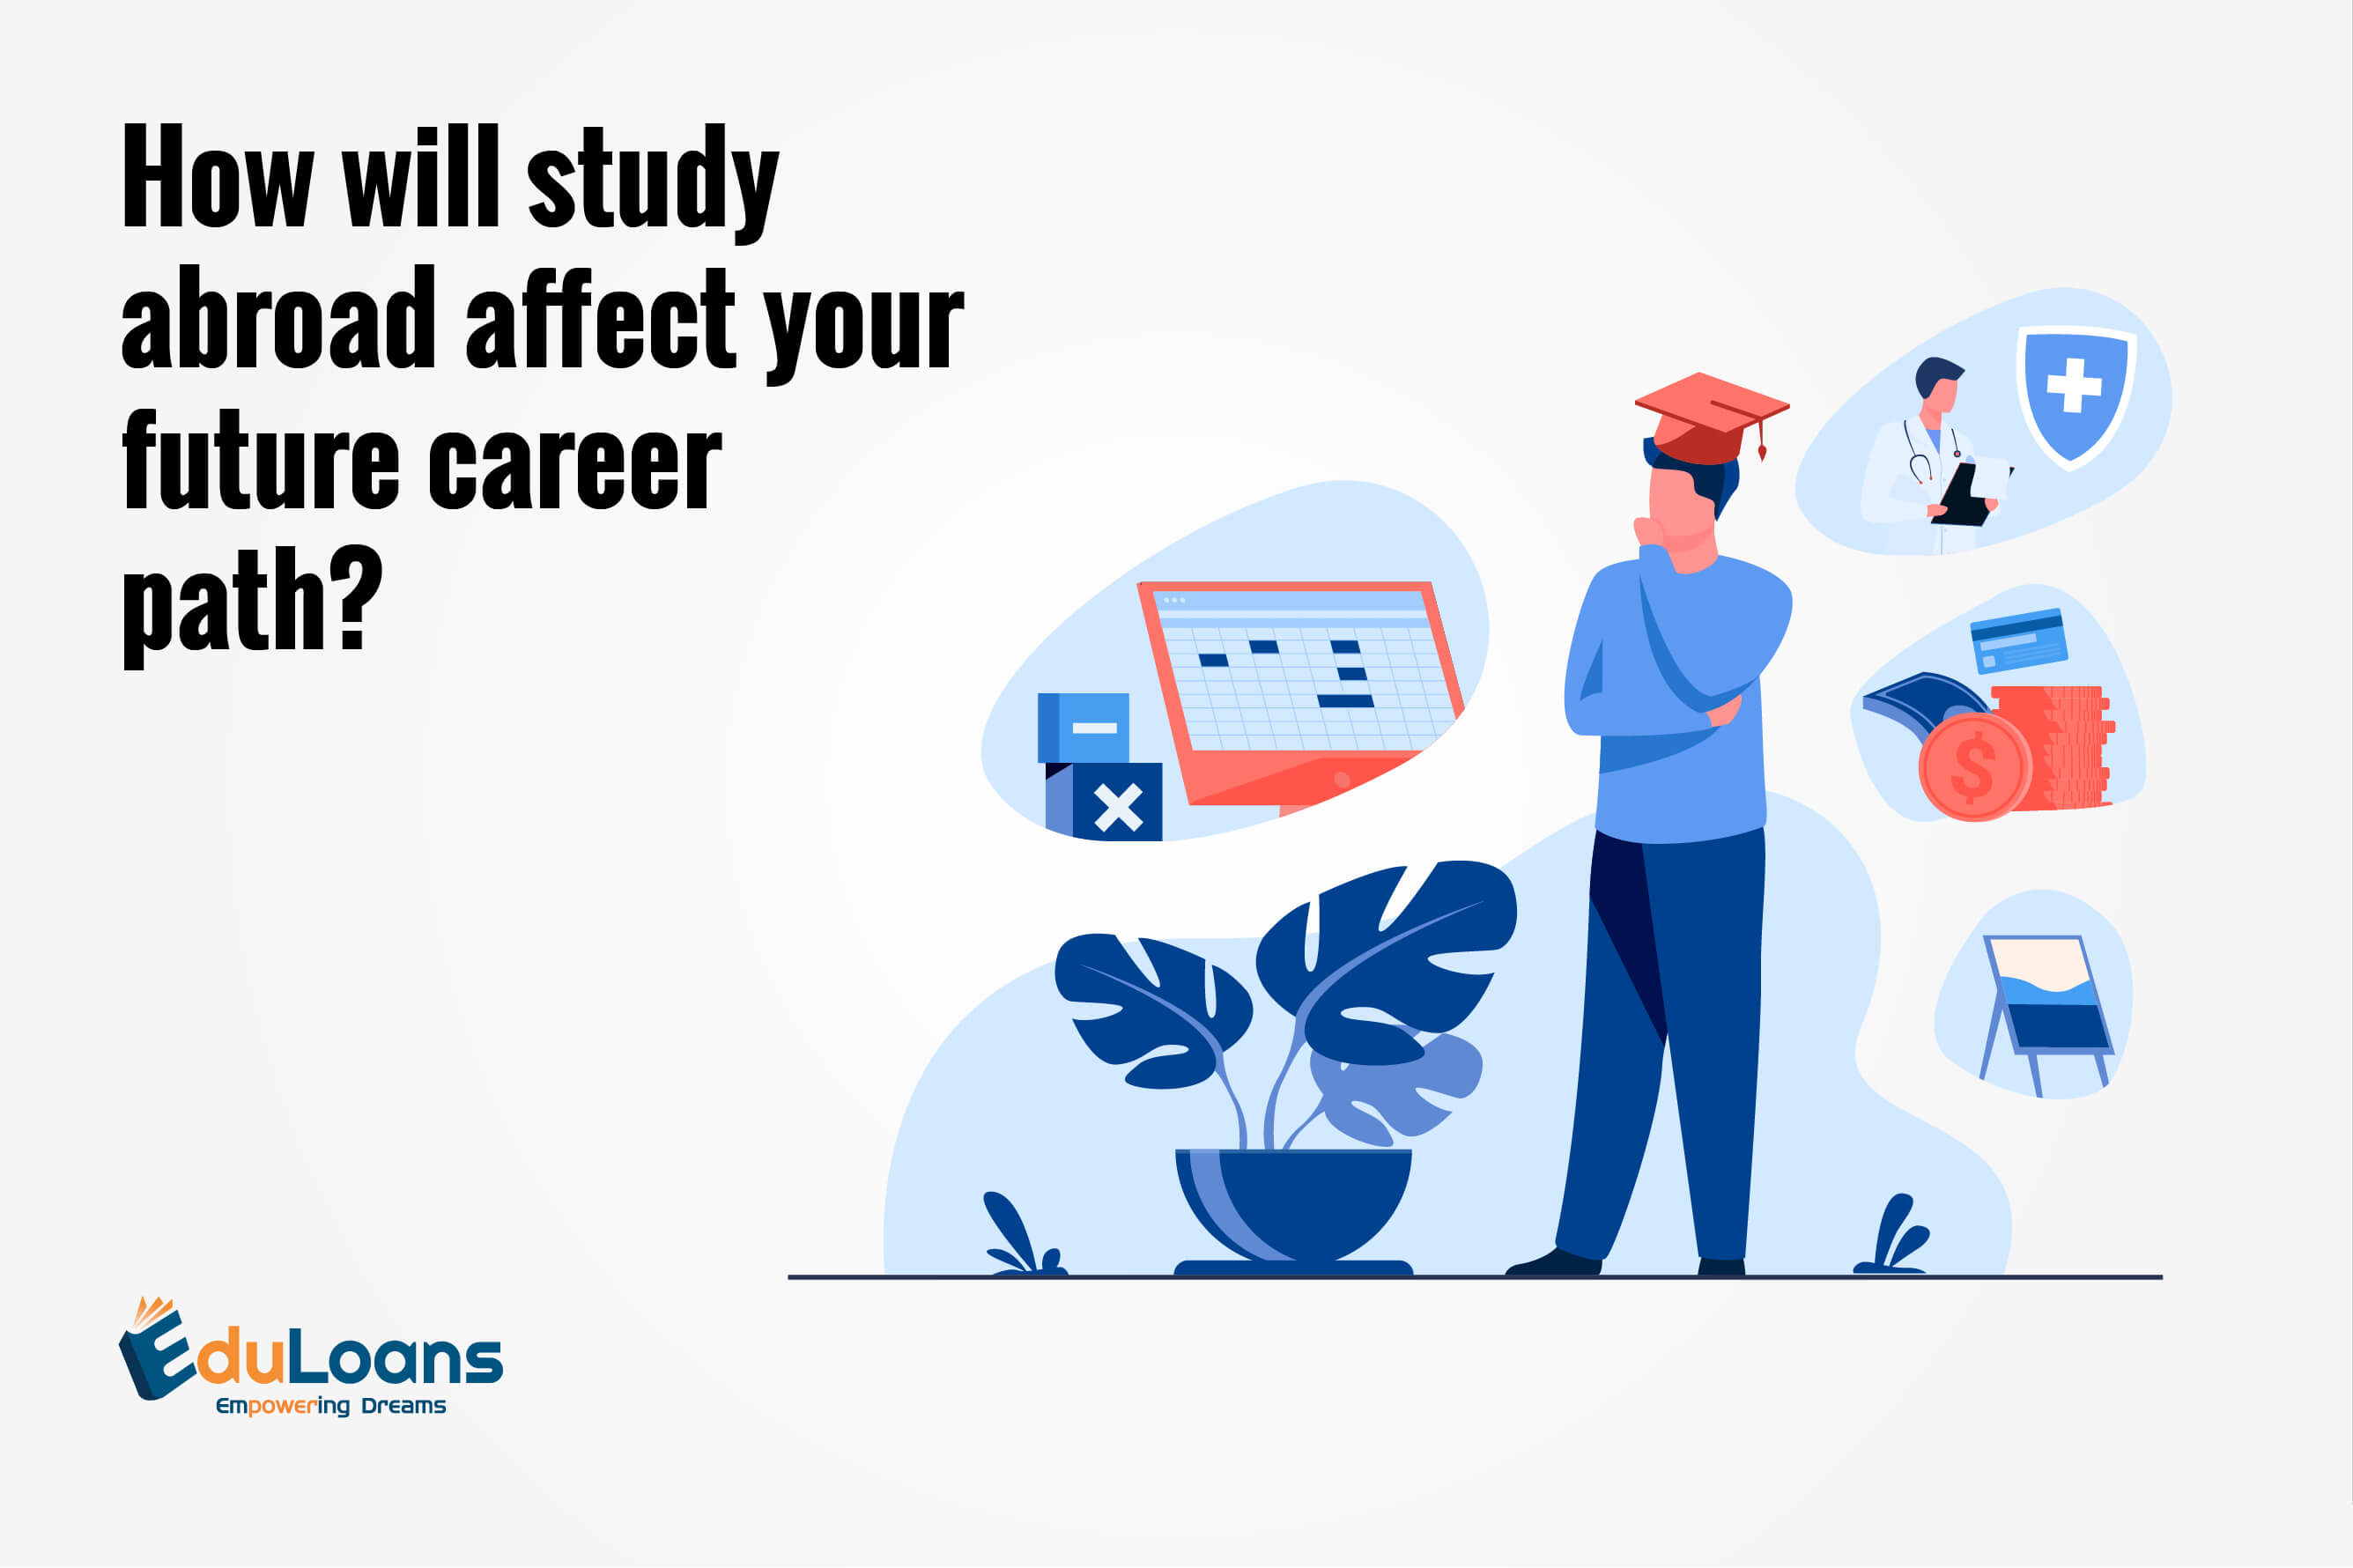 How will study abroad affect your future career path?